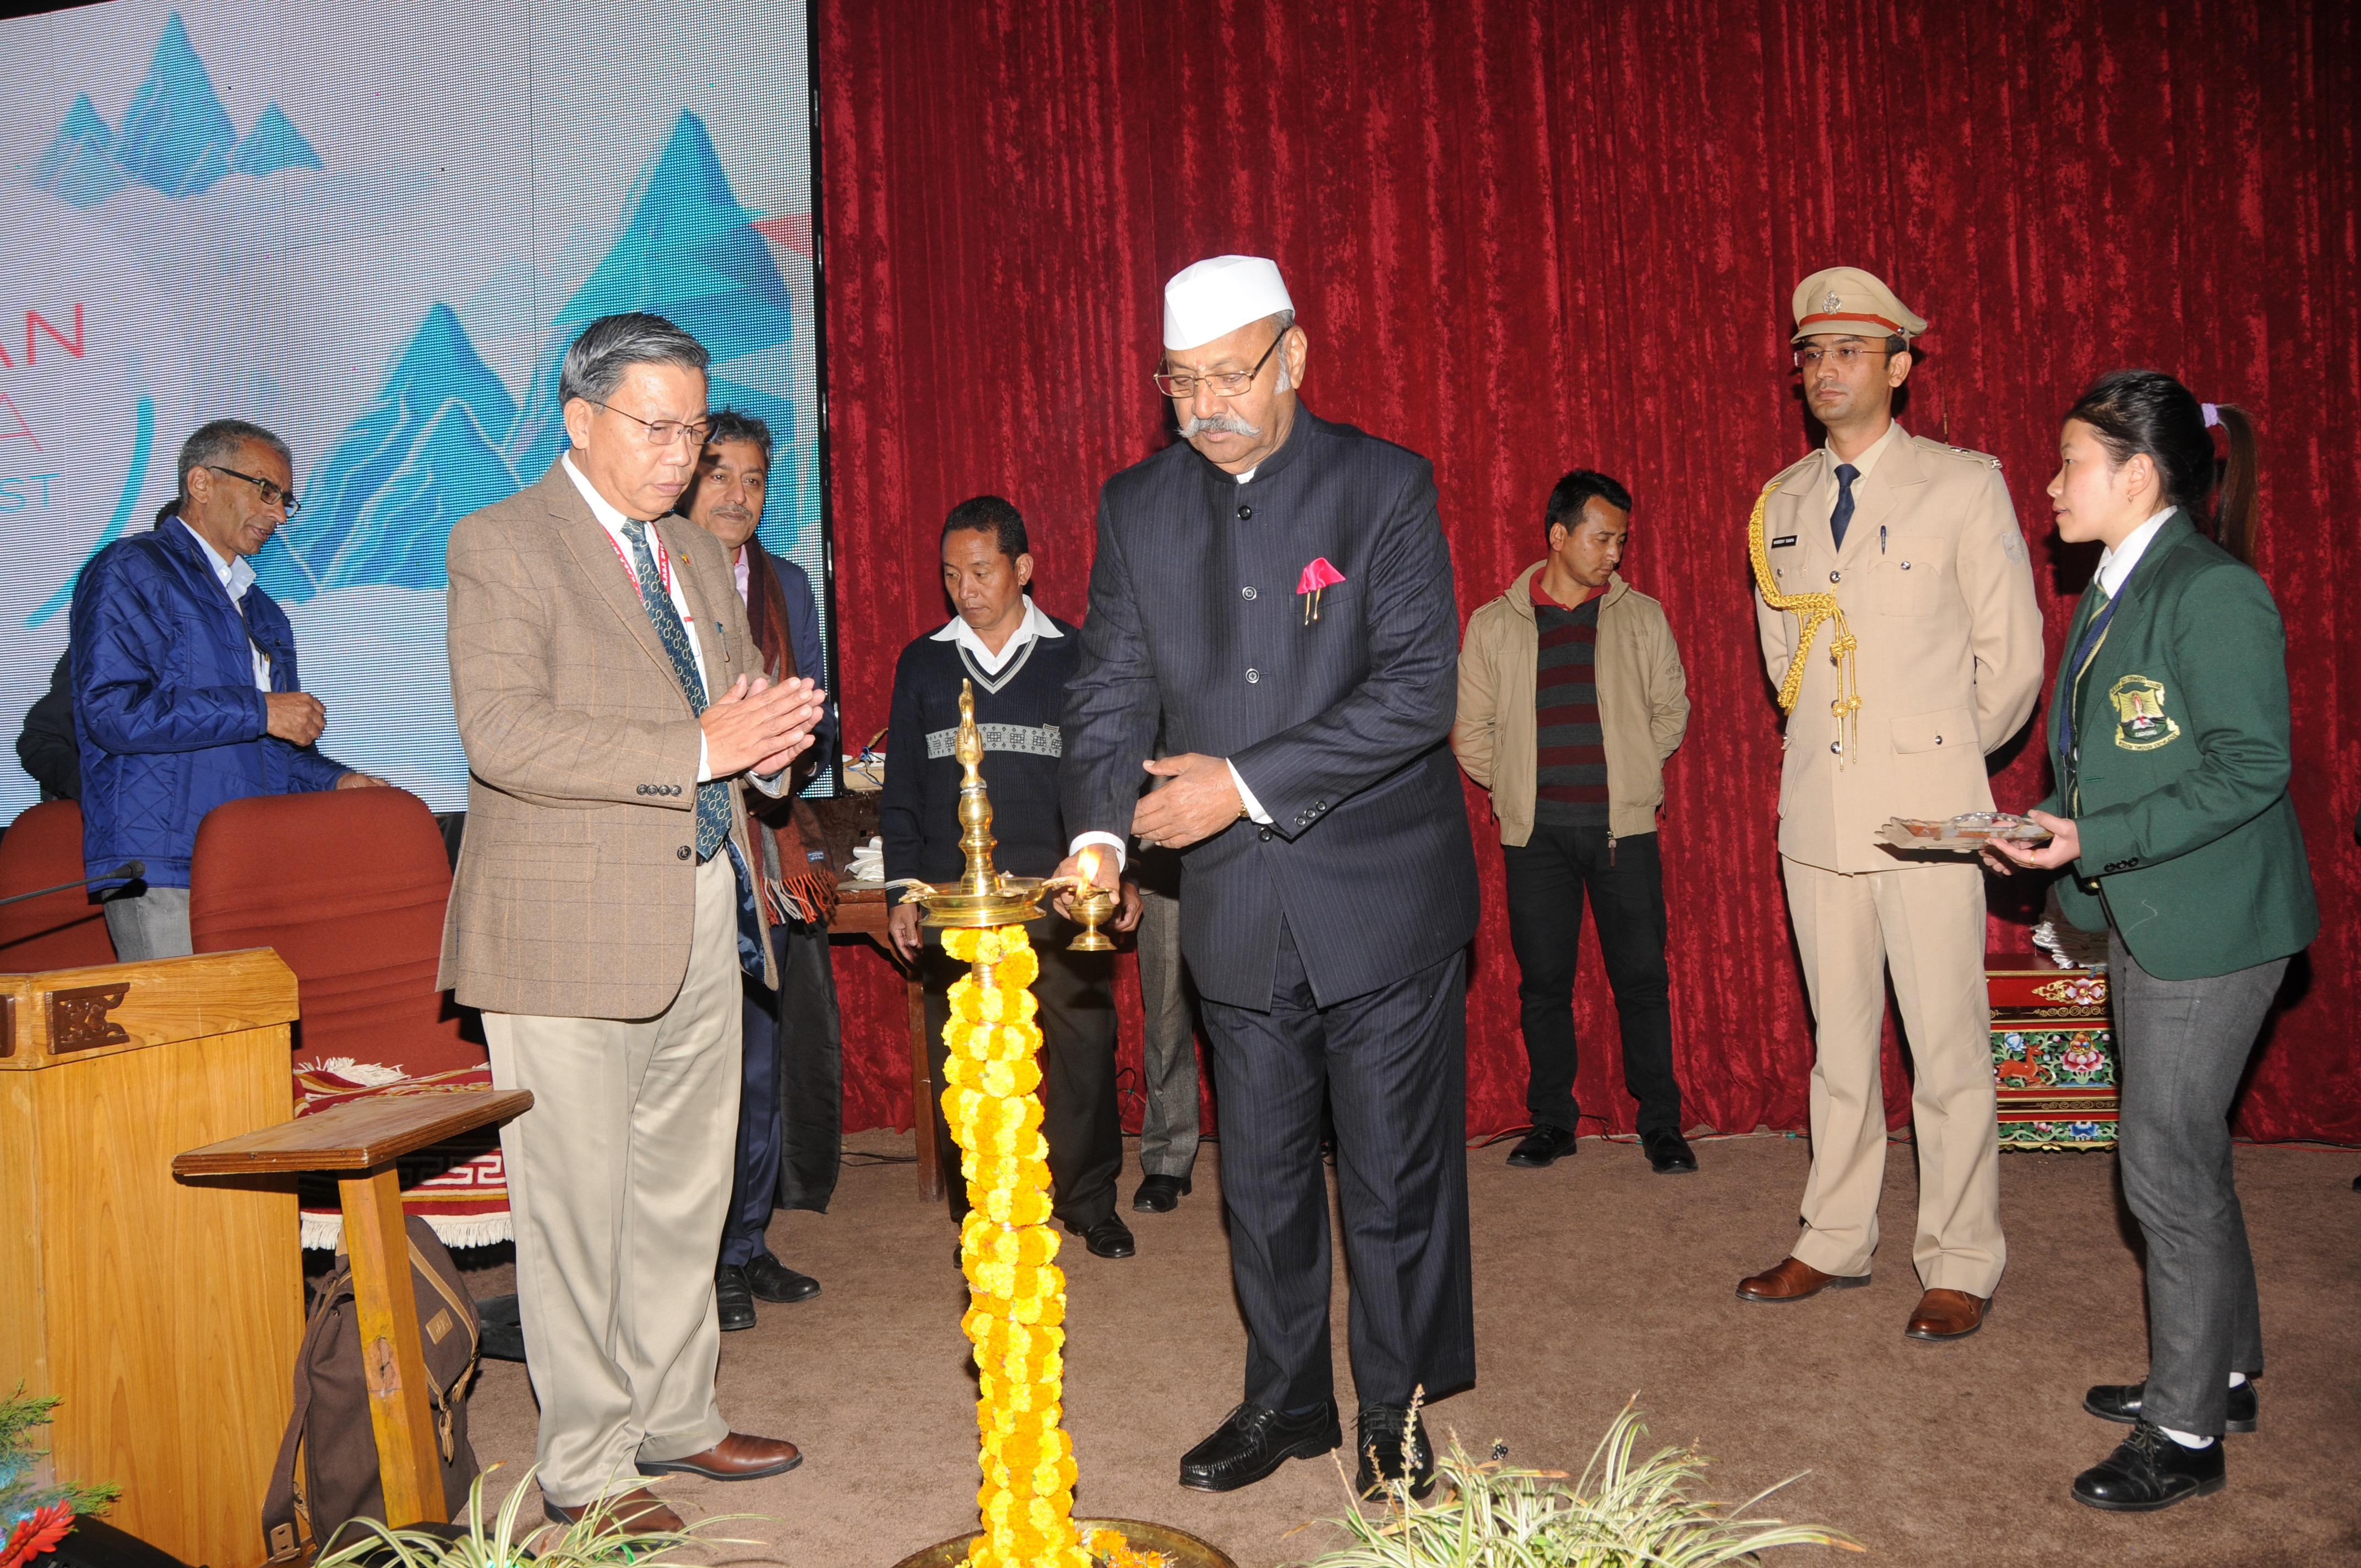 Sikkim Governor Shriniwas Patil  lighting the ceremonial lamp at the concluding day of Kanchanpanda Start-up Fest 2017 on Saturday. Photo by Sagar Chhetri